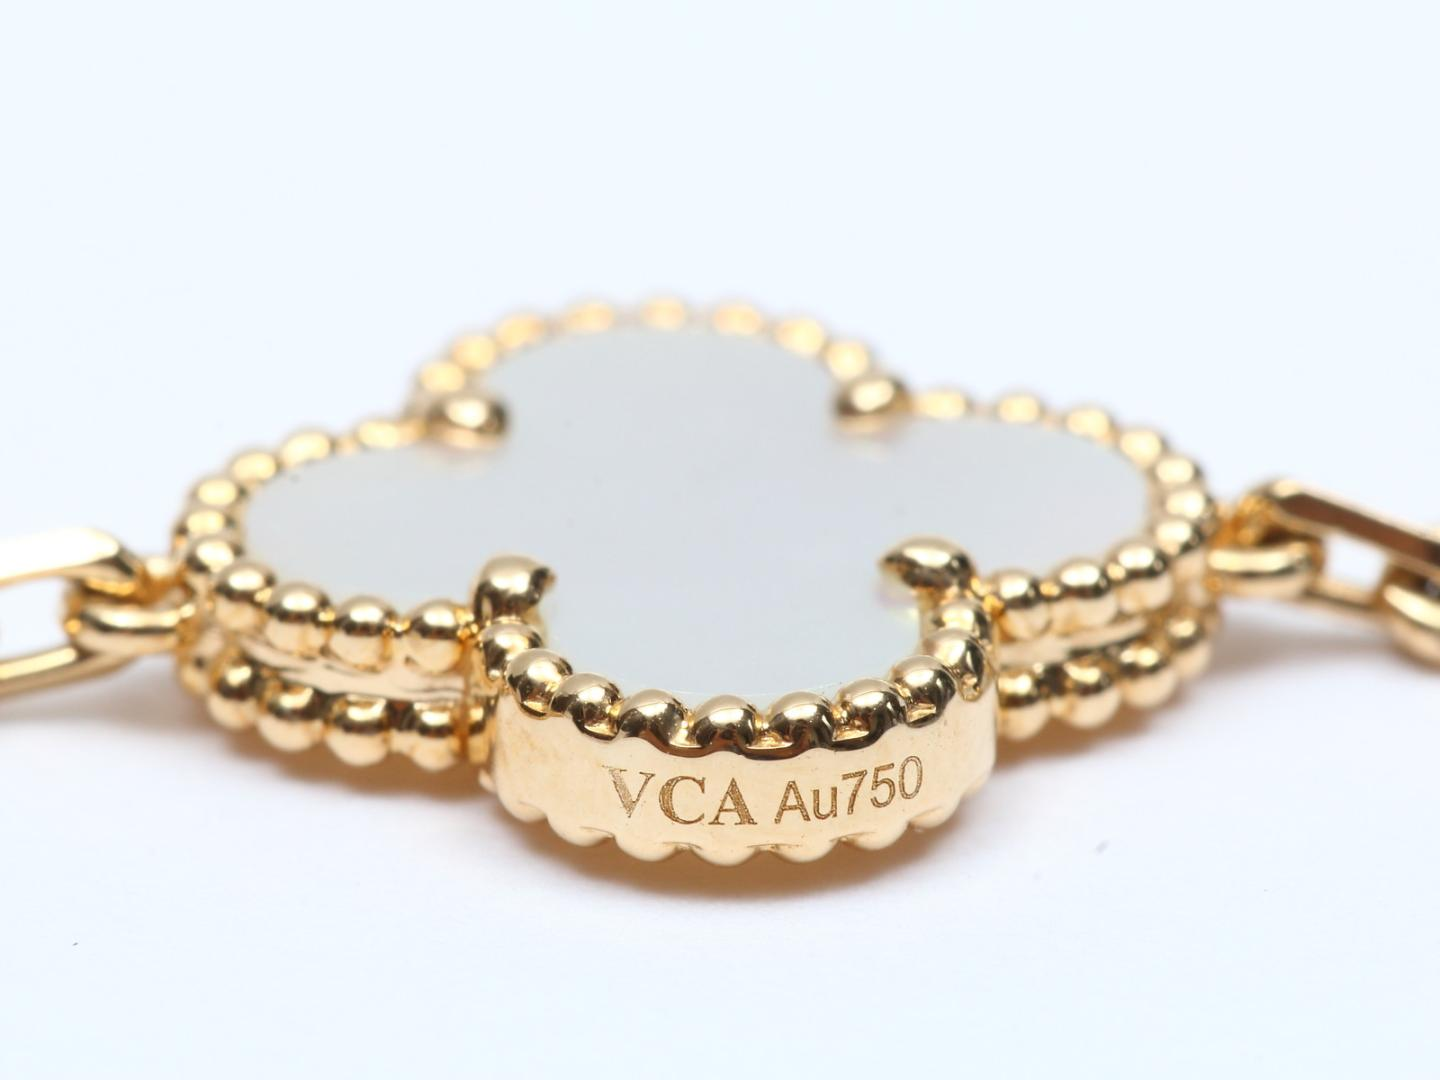 alhambra view jewelry front motifs en van collections vintage cleef us arpels bracelet